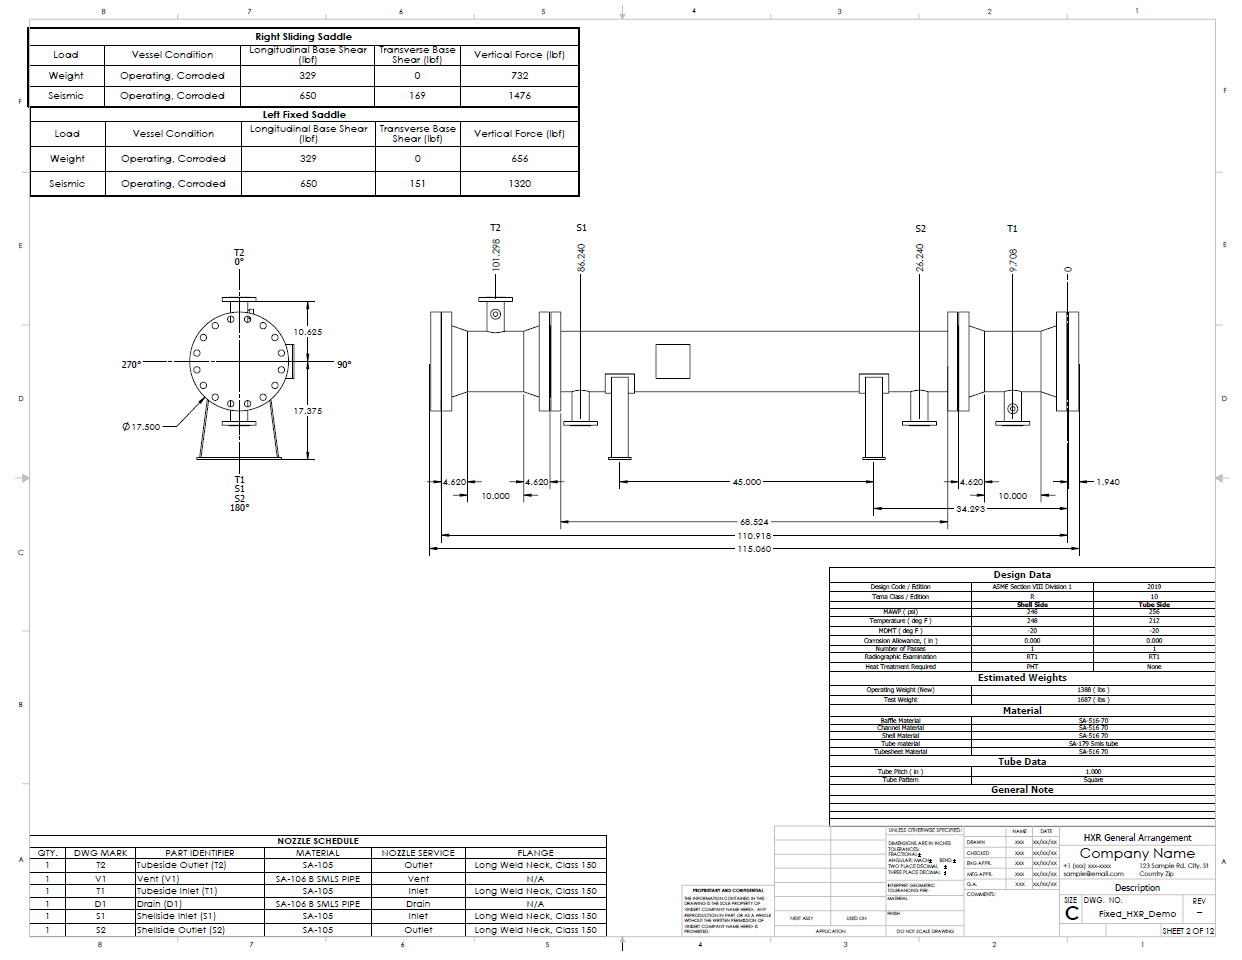 Heat Exchanger general arrangement drawings are generated automatically by the Codeware Interface.